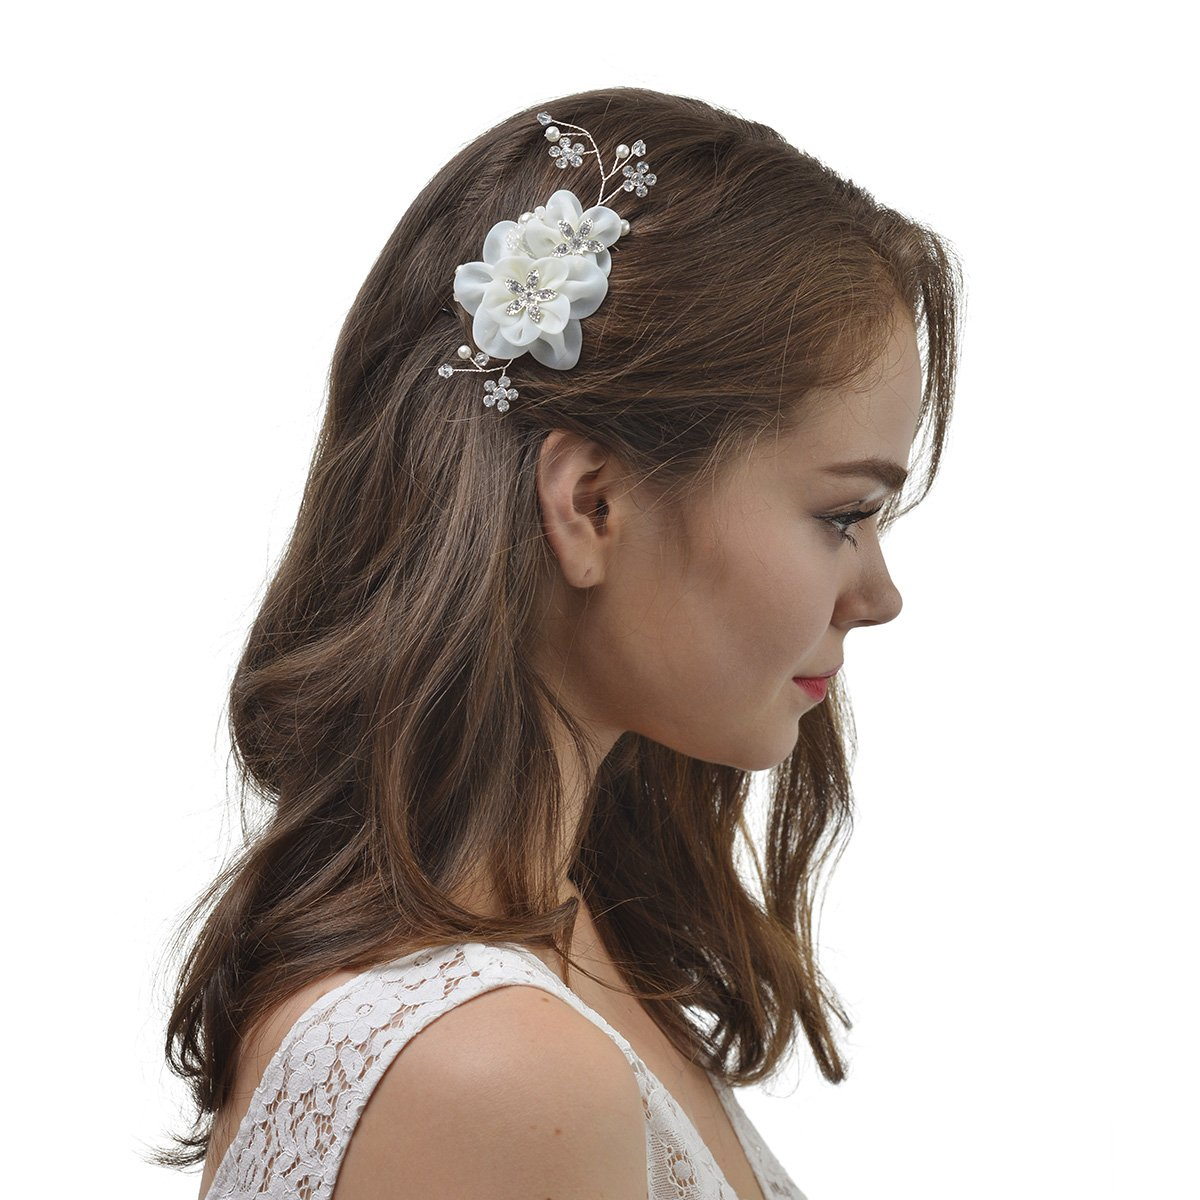 AWEI Wedding Frost Floral Hair Comb for Bride - Bridal Headpiece with Bead - Hair Accessories for Bridesmaids